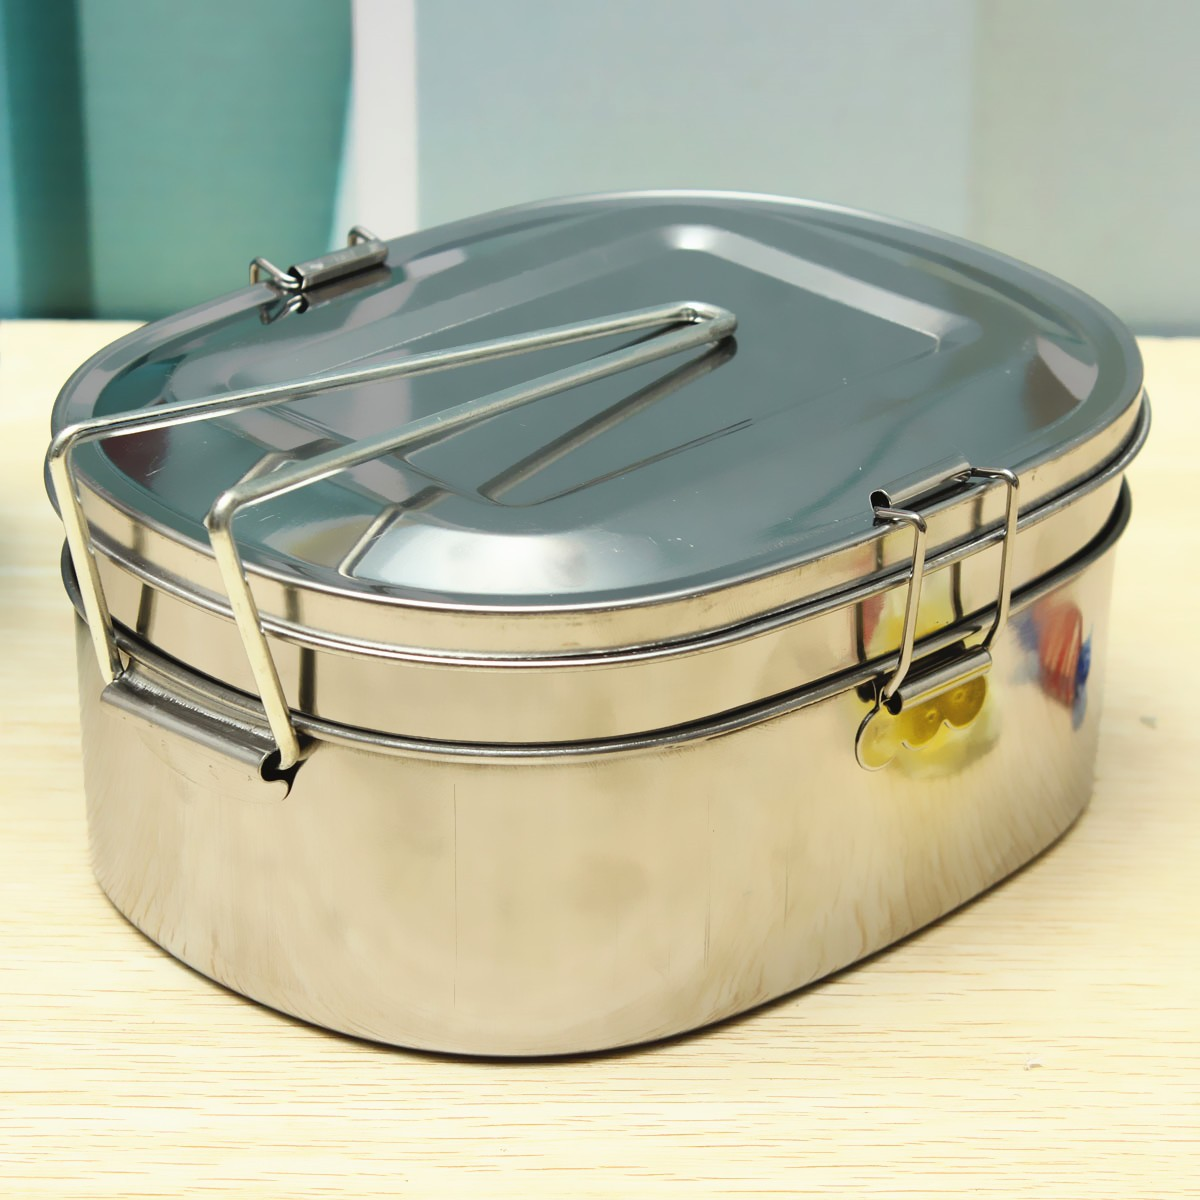 large stainless steel student oval case bento lunch box food container 2 layers lazada malaysia. Black Bedroom Furniture Sets. Home Design Ideas